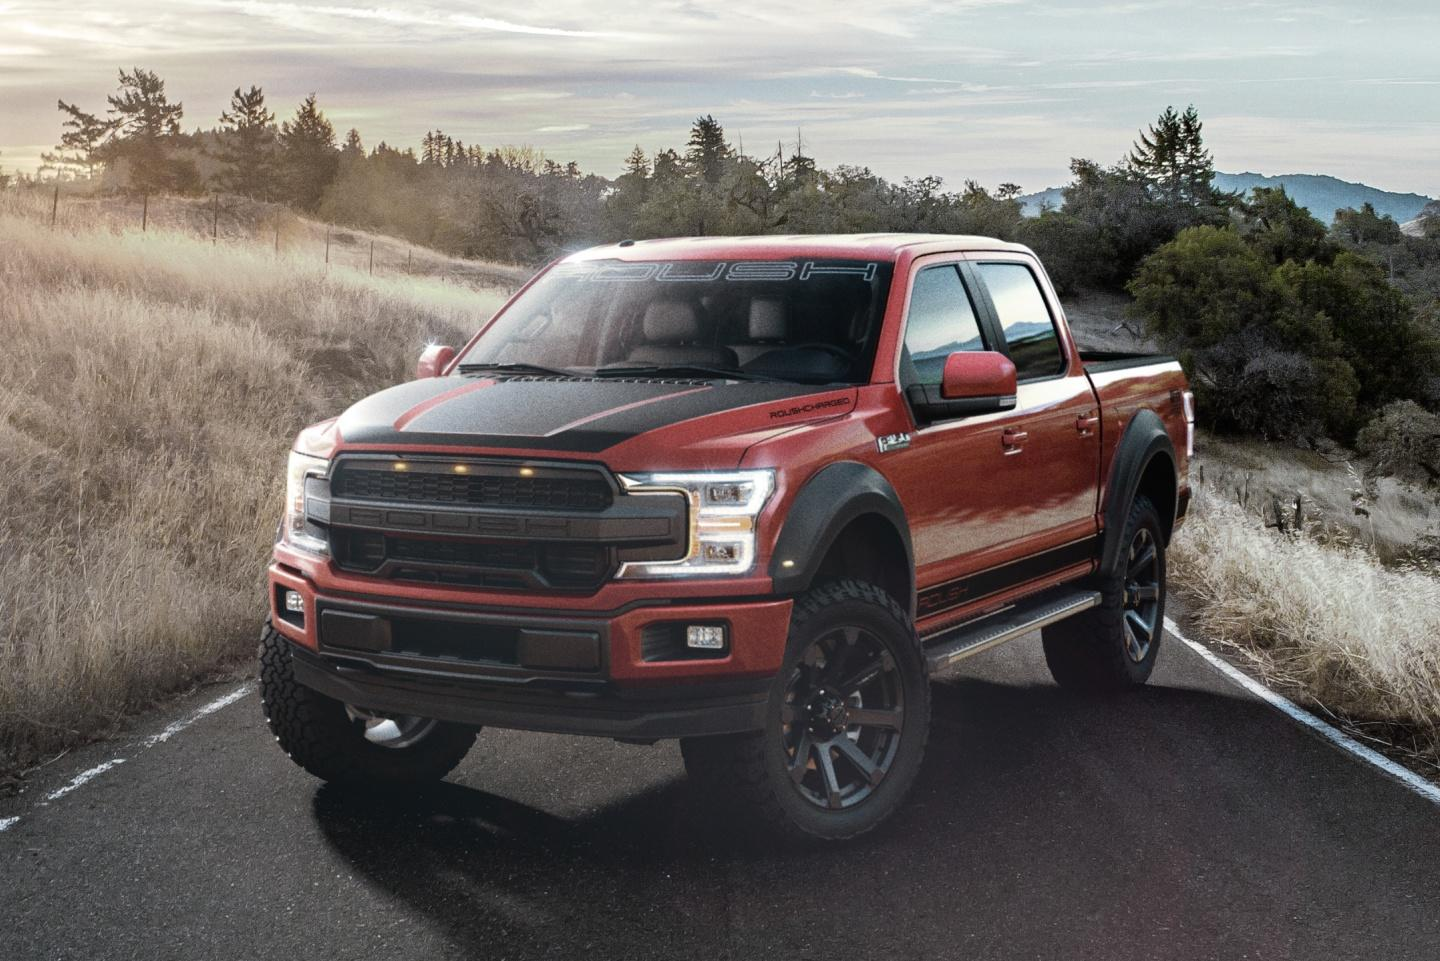 2019 ROUSH F-150 Supercharged